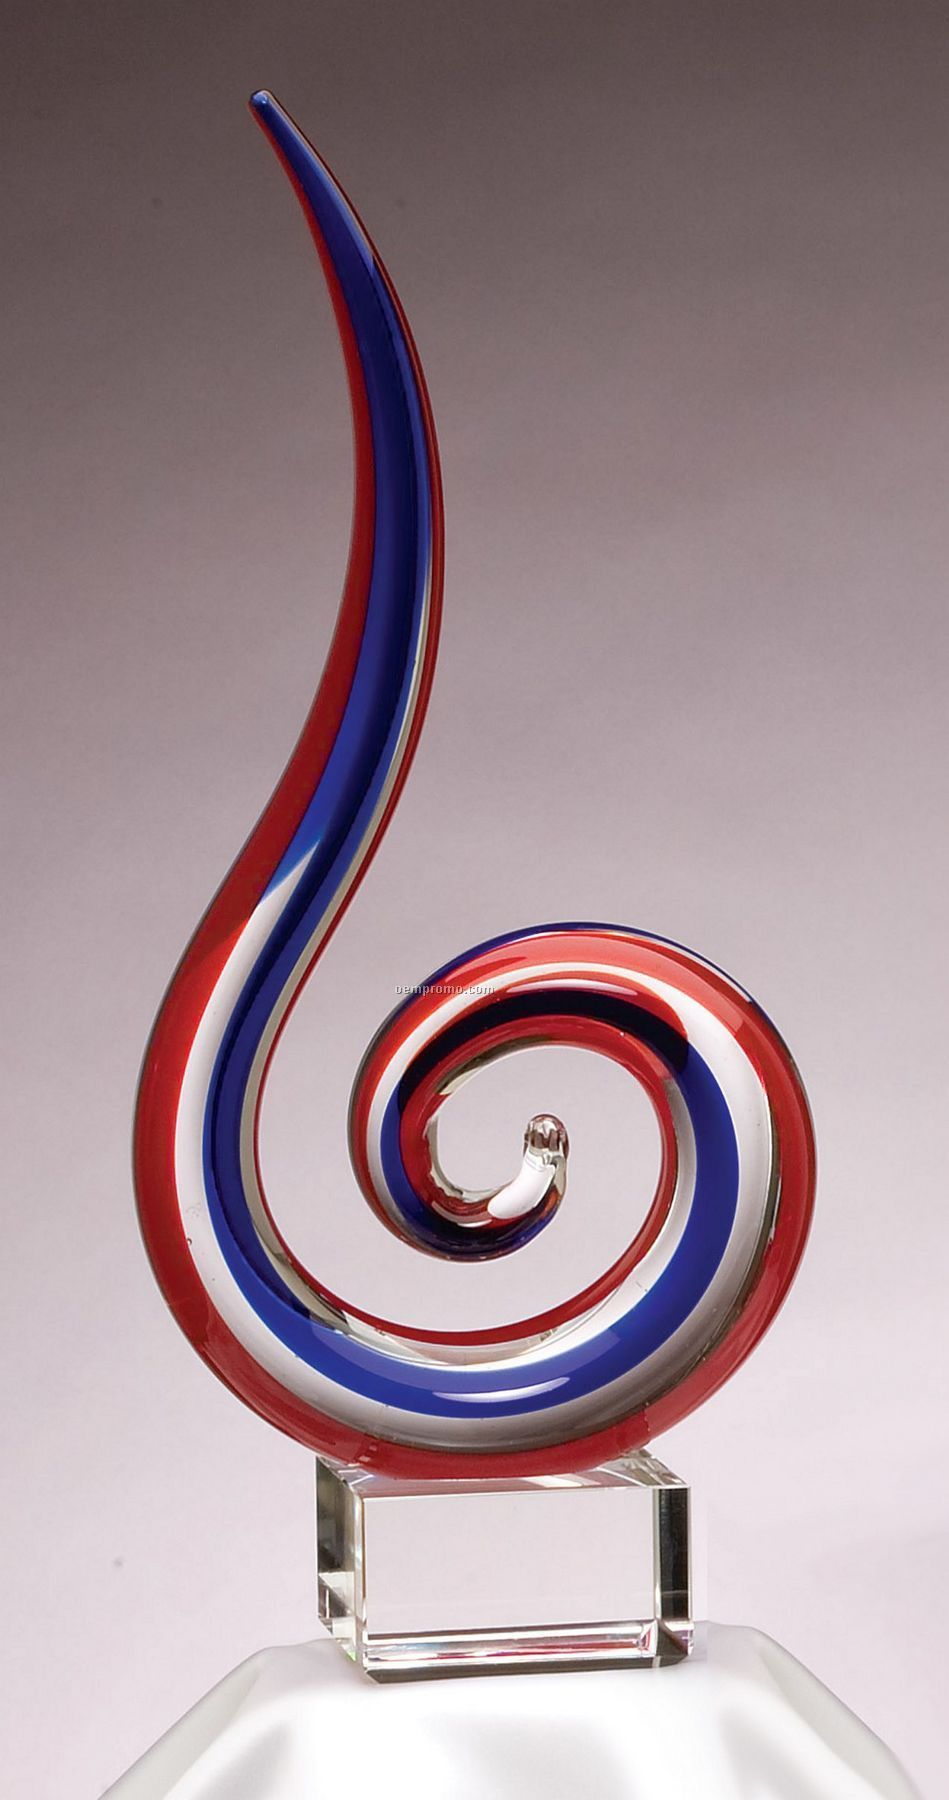 Red And Blue Rising Sculpture / Award